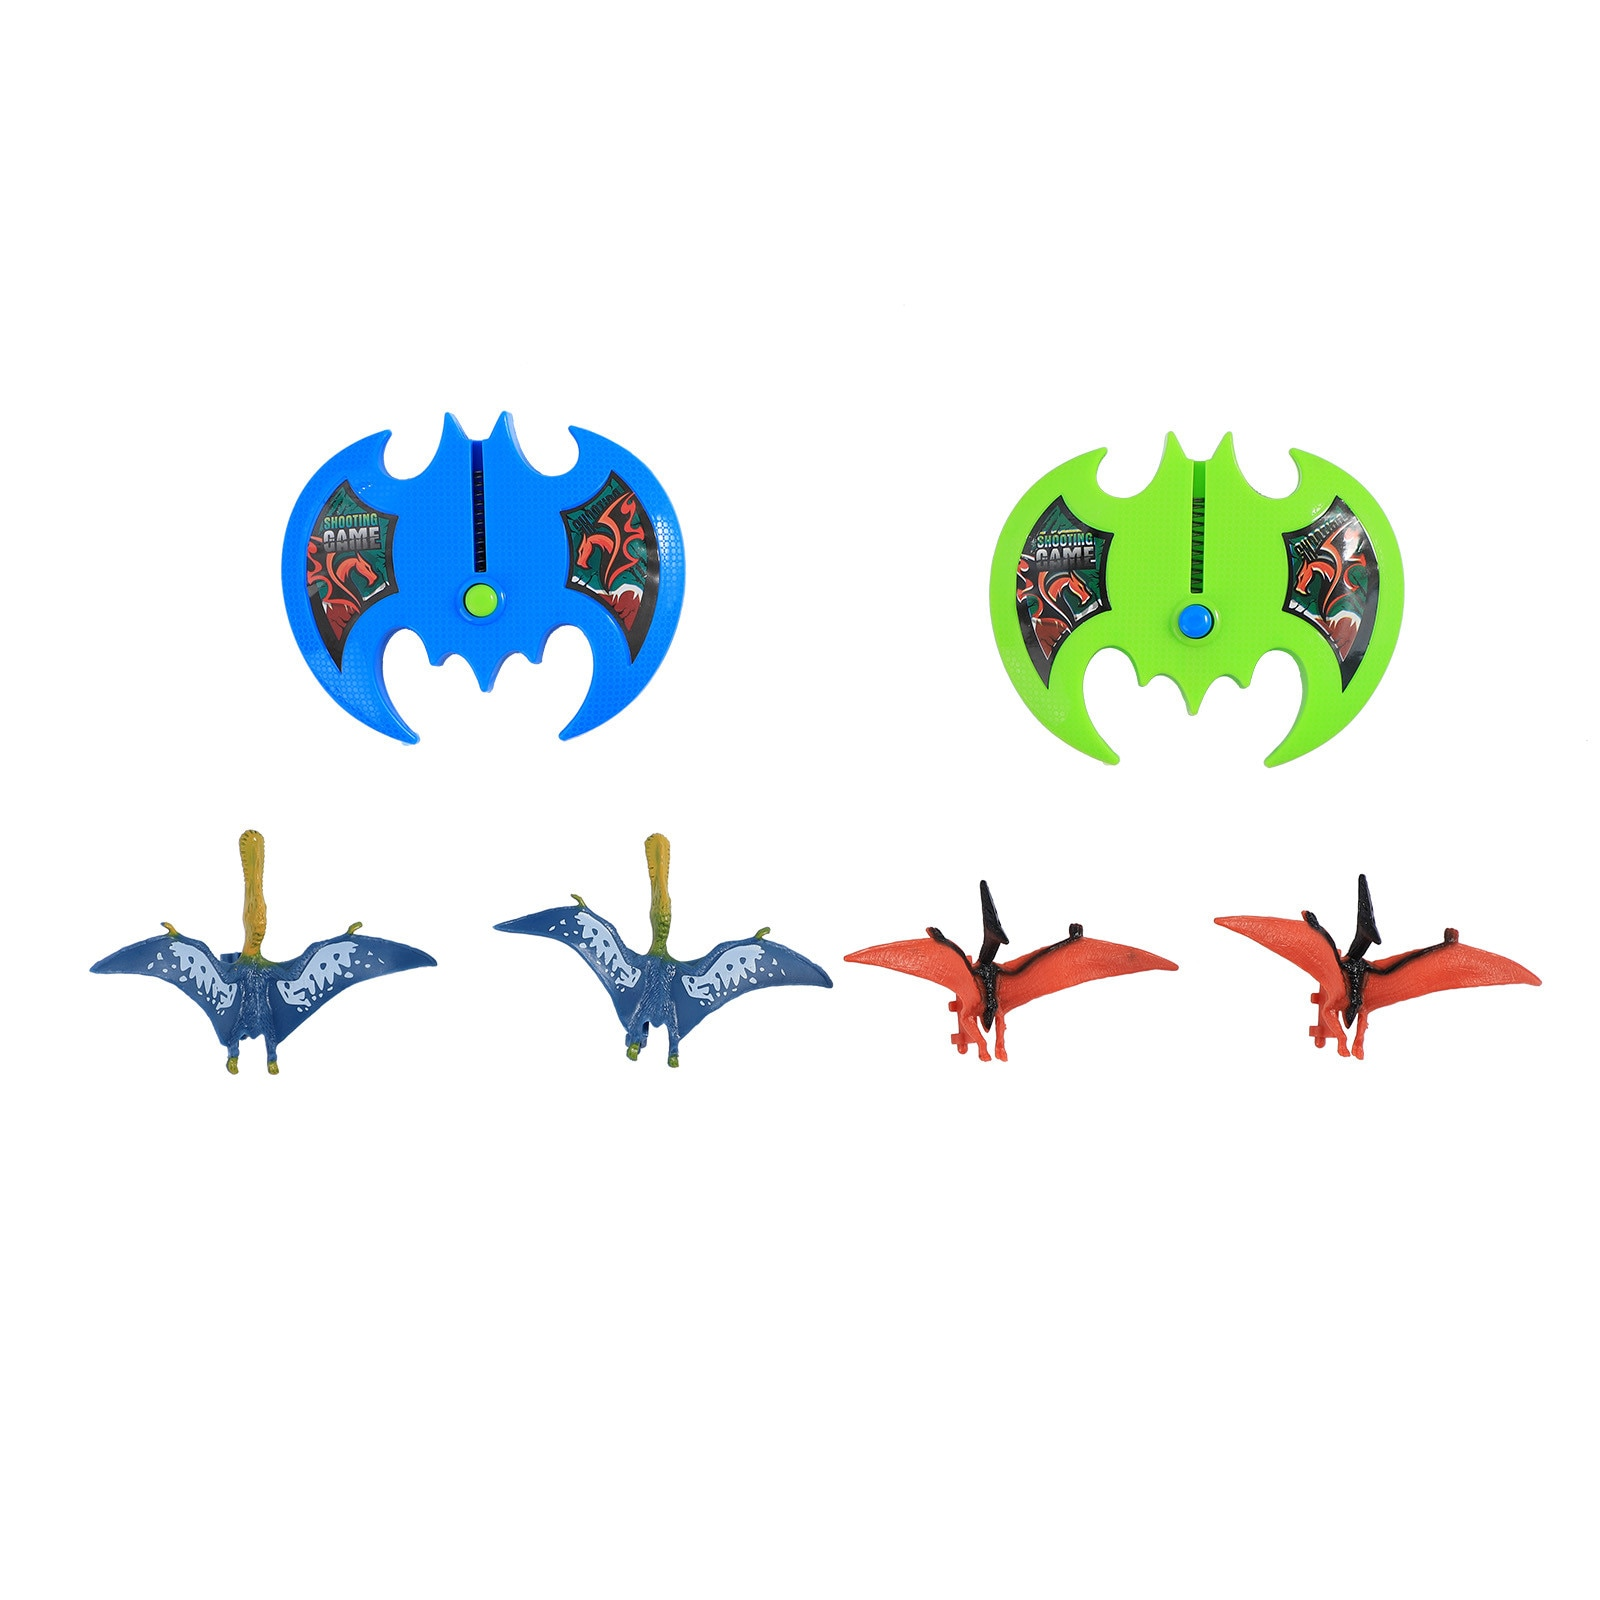 Children's Foam Catapult Airplane Toy Dinosaur Pull Back Outdoor Fighter Model Non-toxic Colored Animal Vehicles Toys #10